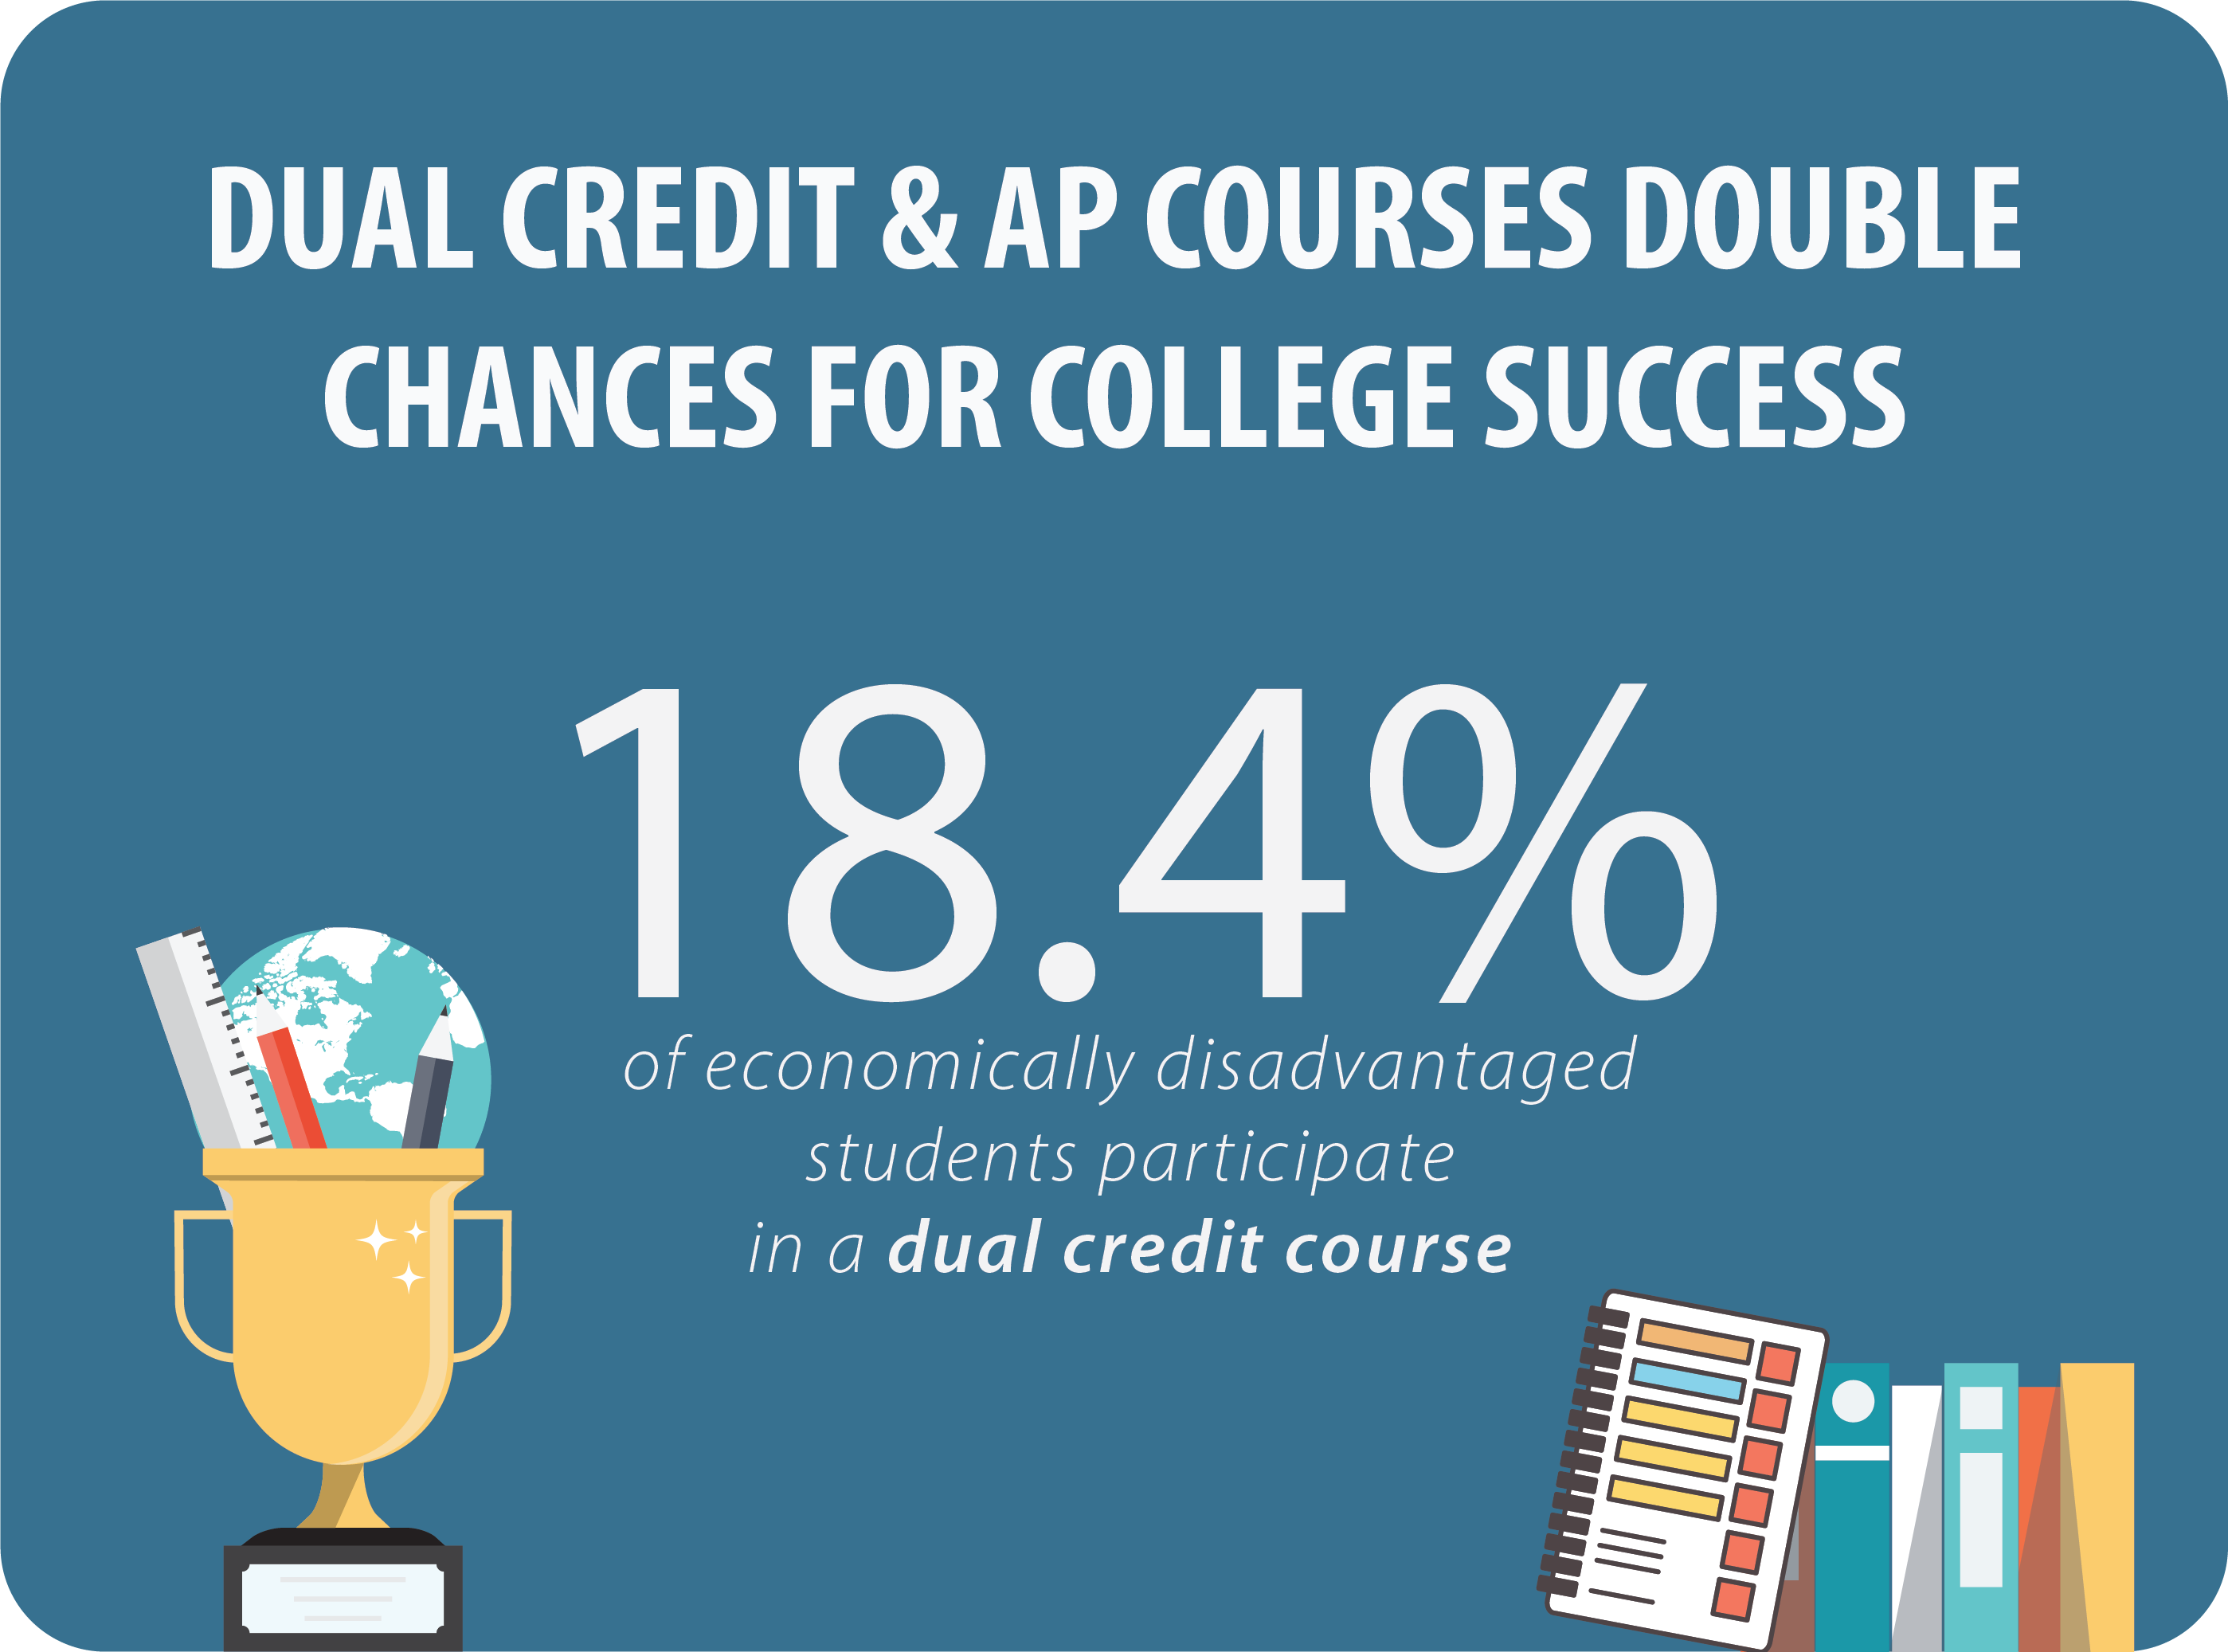 dual credit and AP courses double chances for college success. 18.4% of economically disadvantaged students participate in dual credit courses